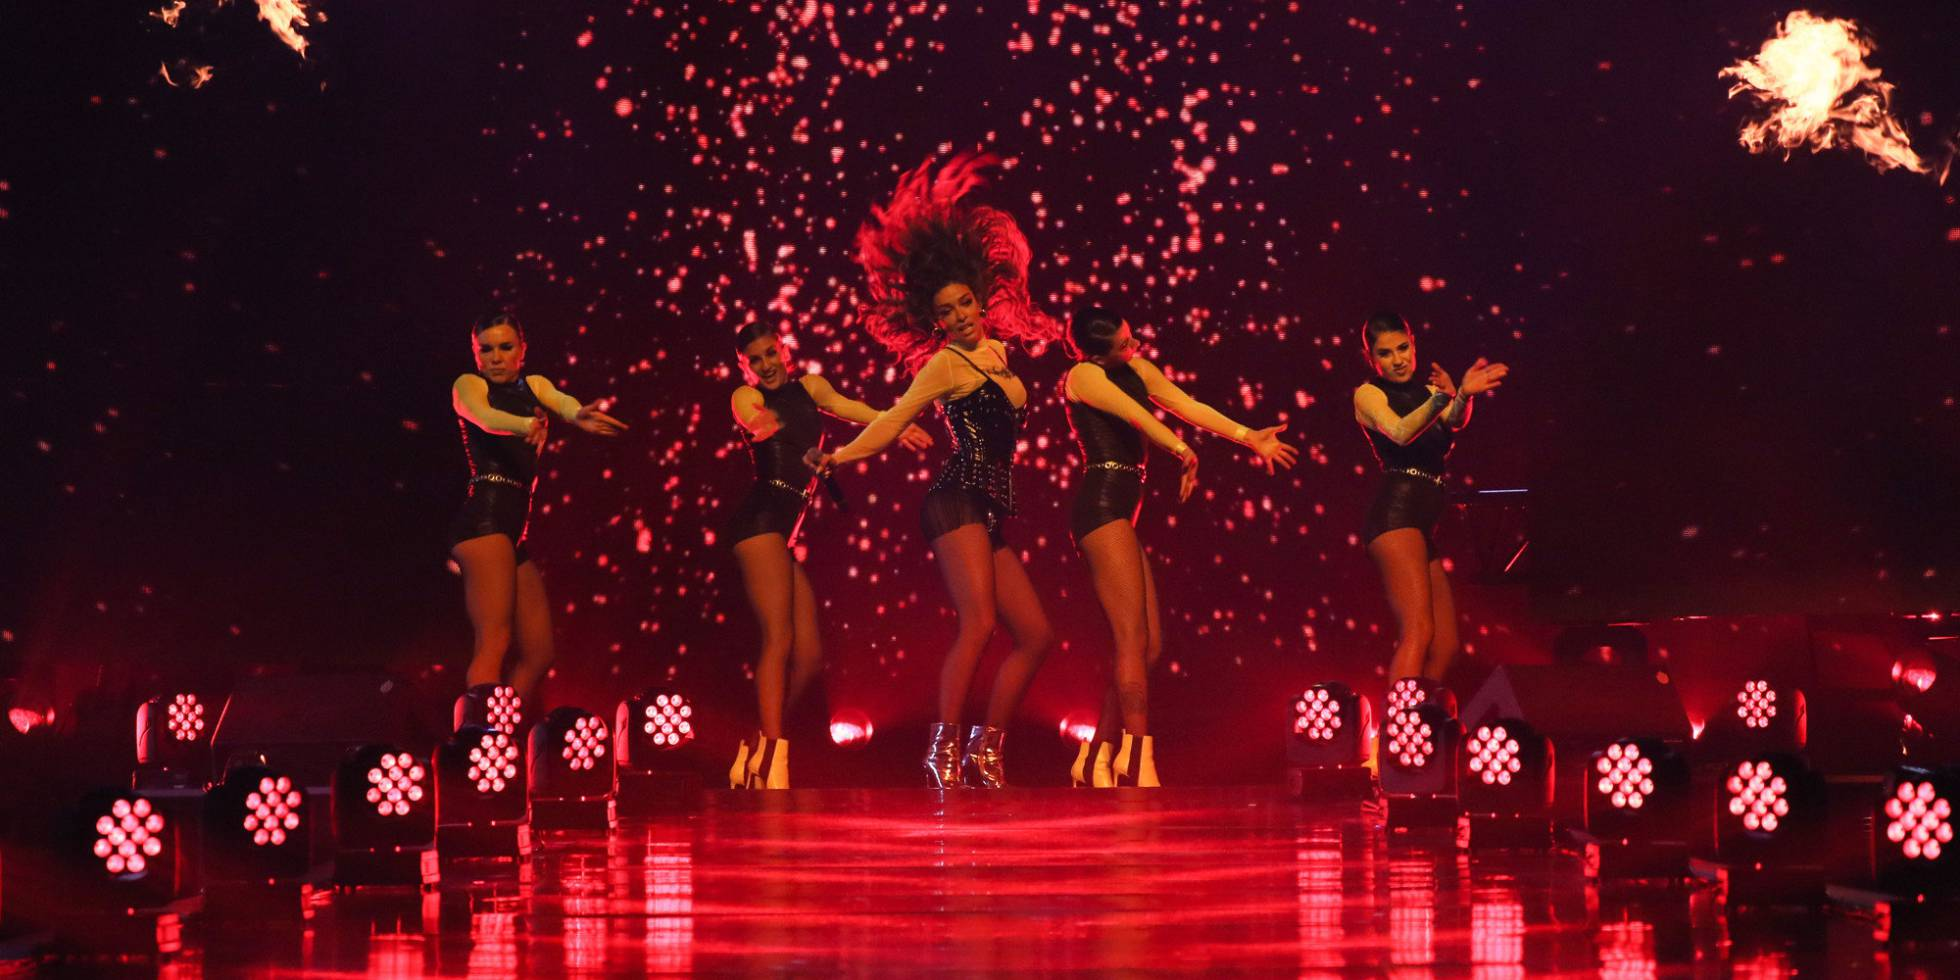 Eleni Foureira puts the stage on fire during her LOS 40 Music Awards performance